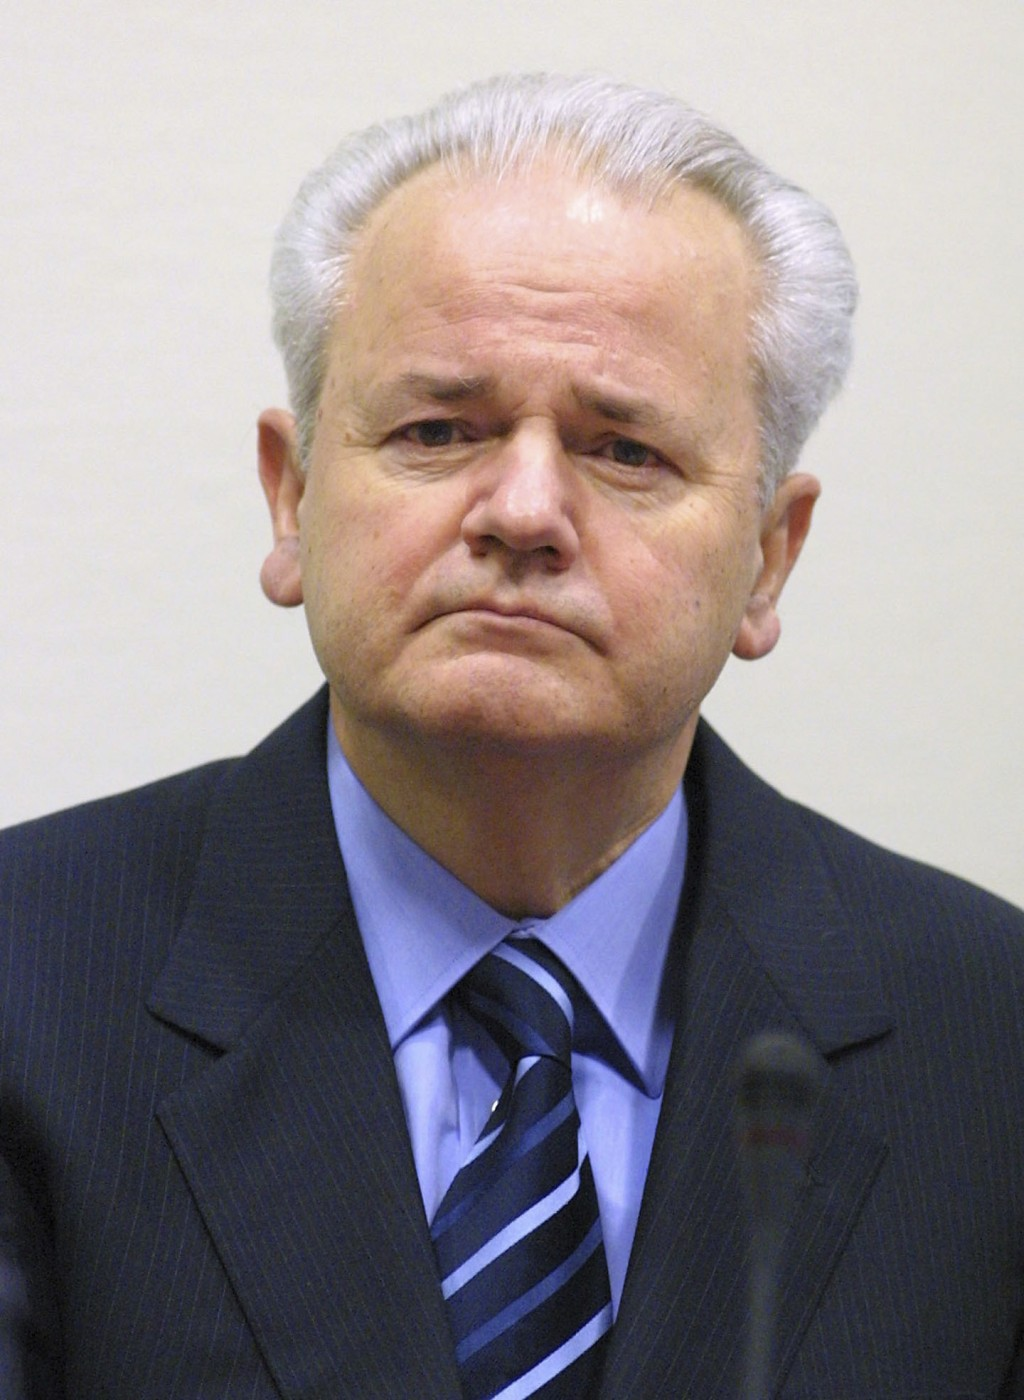 FILE - In this Jan. 9, 2002 file photo, former Yugoslav President Slobodan Milosevic sits down in a courtroom of the war crimes tribunal in The Hague,...